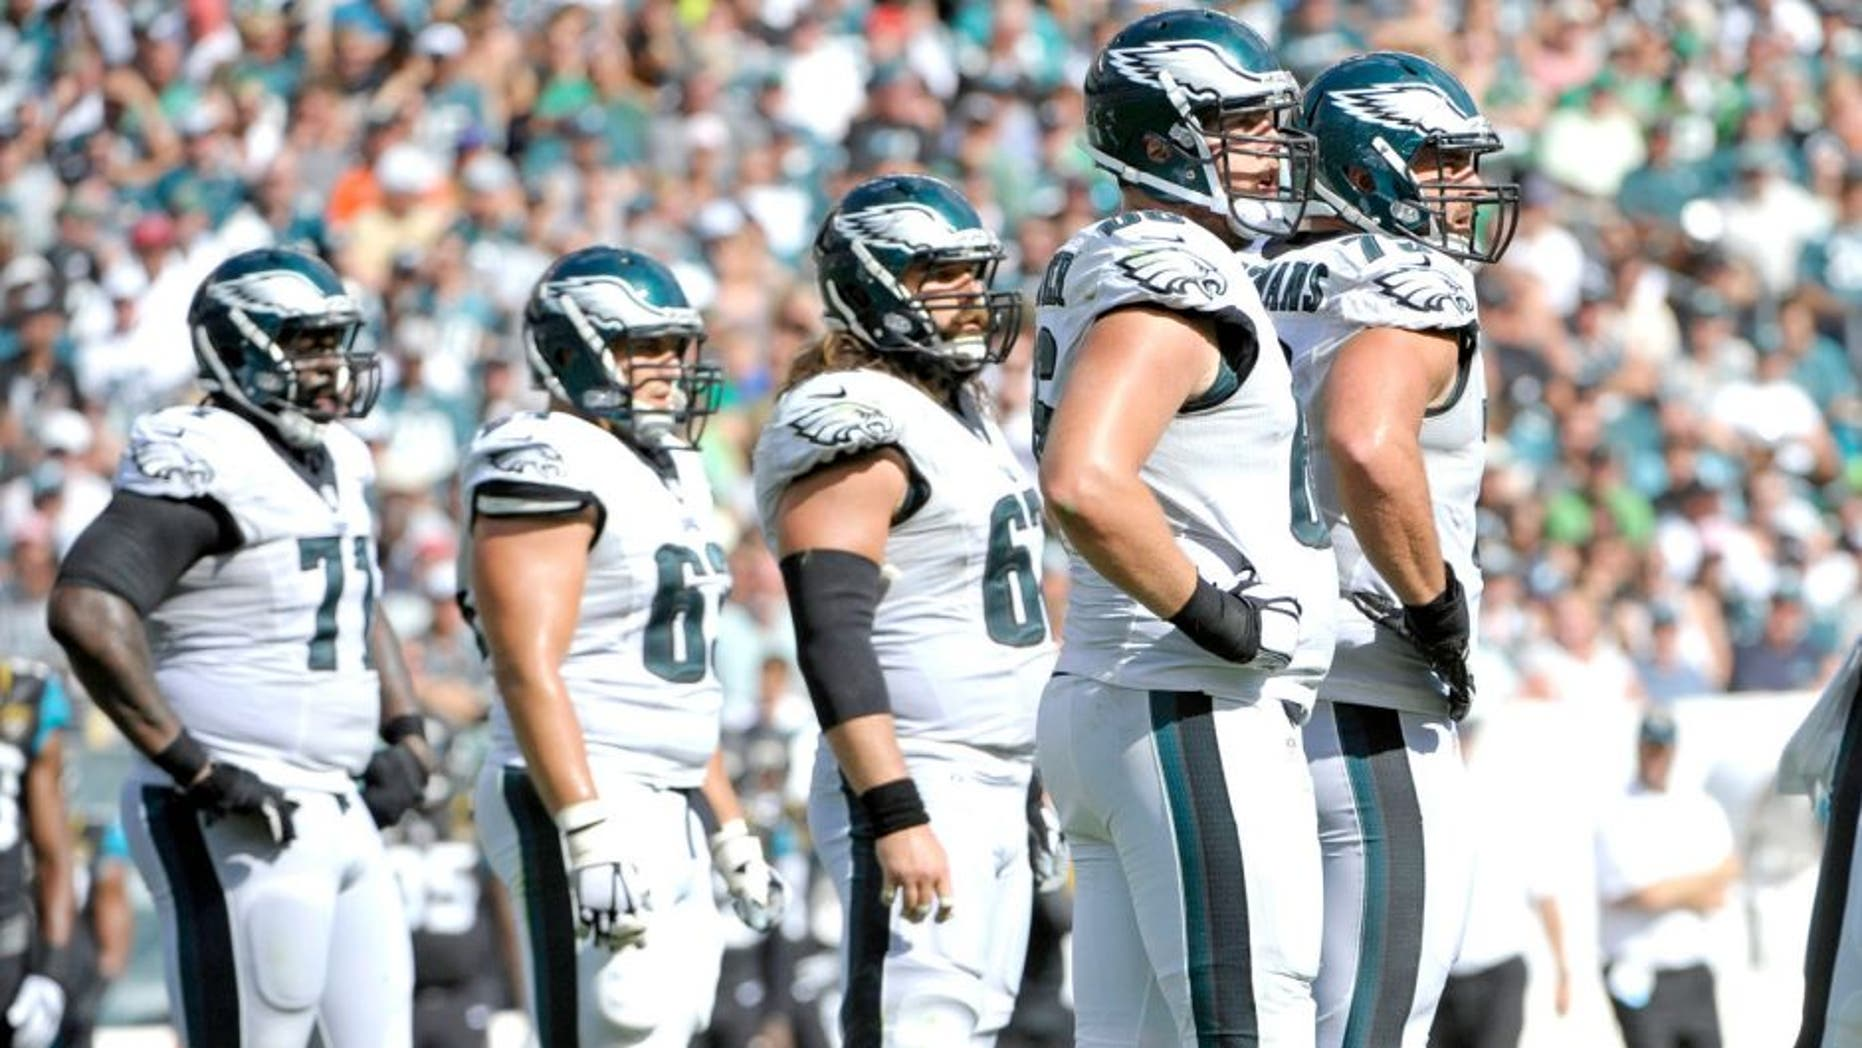 Sep 7, 2014; Philadelphia, PA, USA; Philadelphia Eagles tackle Jason Peters (71), center David Molk (63), center Jason Kelce (62), guard Todd Herremans (79) and tackle Andrew Gardner (66) during game against the Jacksonville Jaguars at Lincoln Financial Field. The Eagles defeated the Jaguars, 34-17. Mandatory Credit: Eric Hartline-USA TODAY Sports